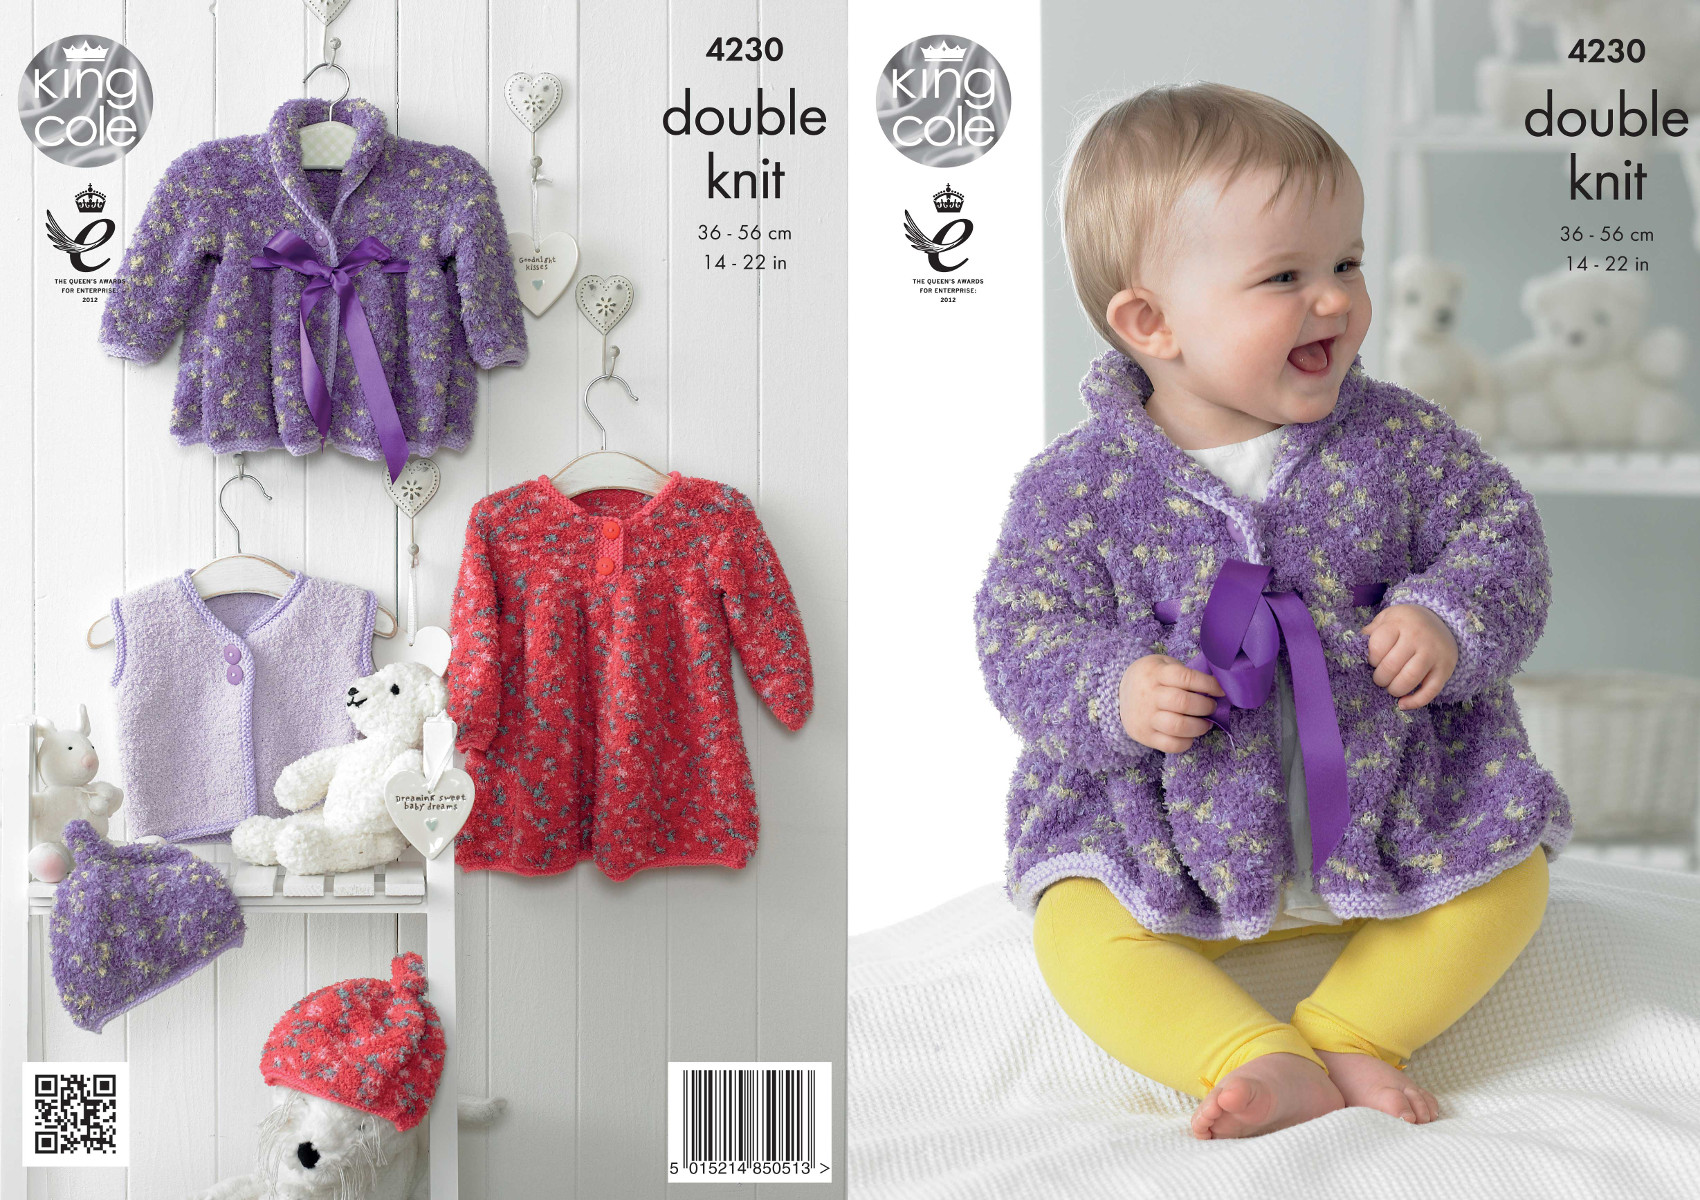 king cole knitting patterns king cole cuddles dk double knitting pattern baby dress coat waistcoat hat wxgazzv